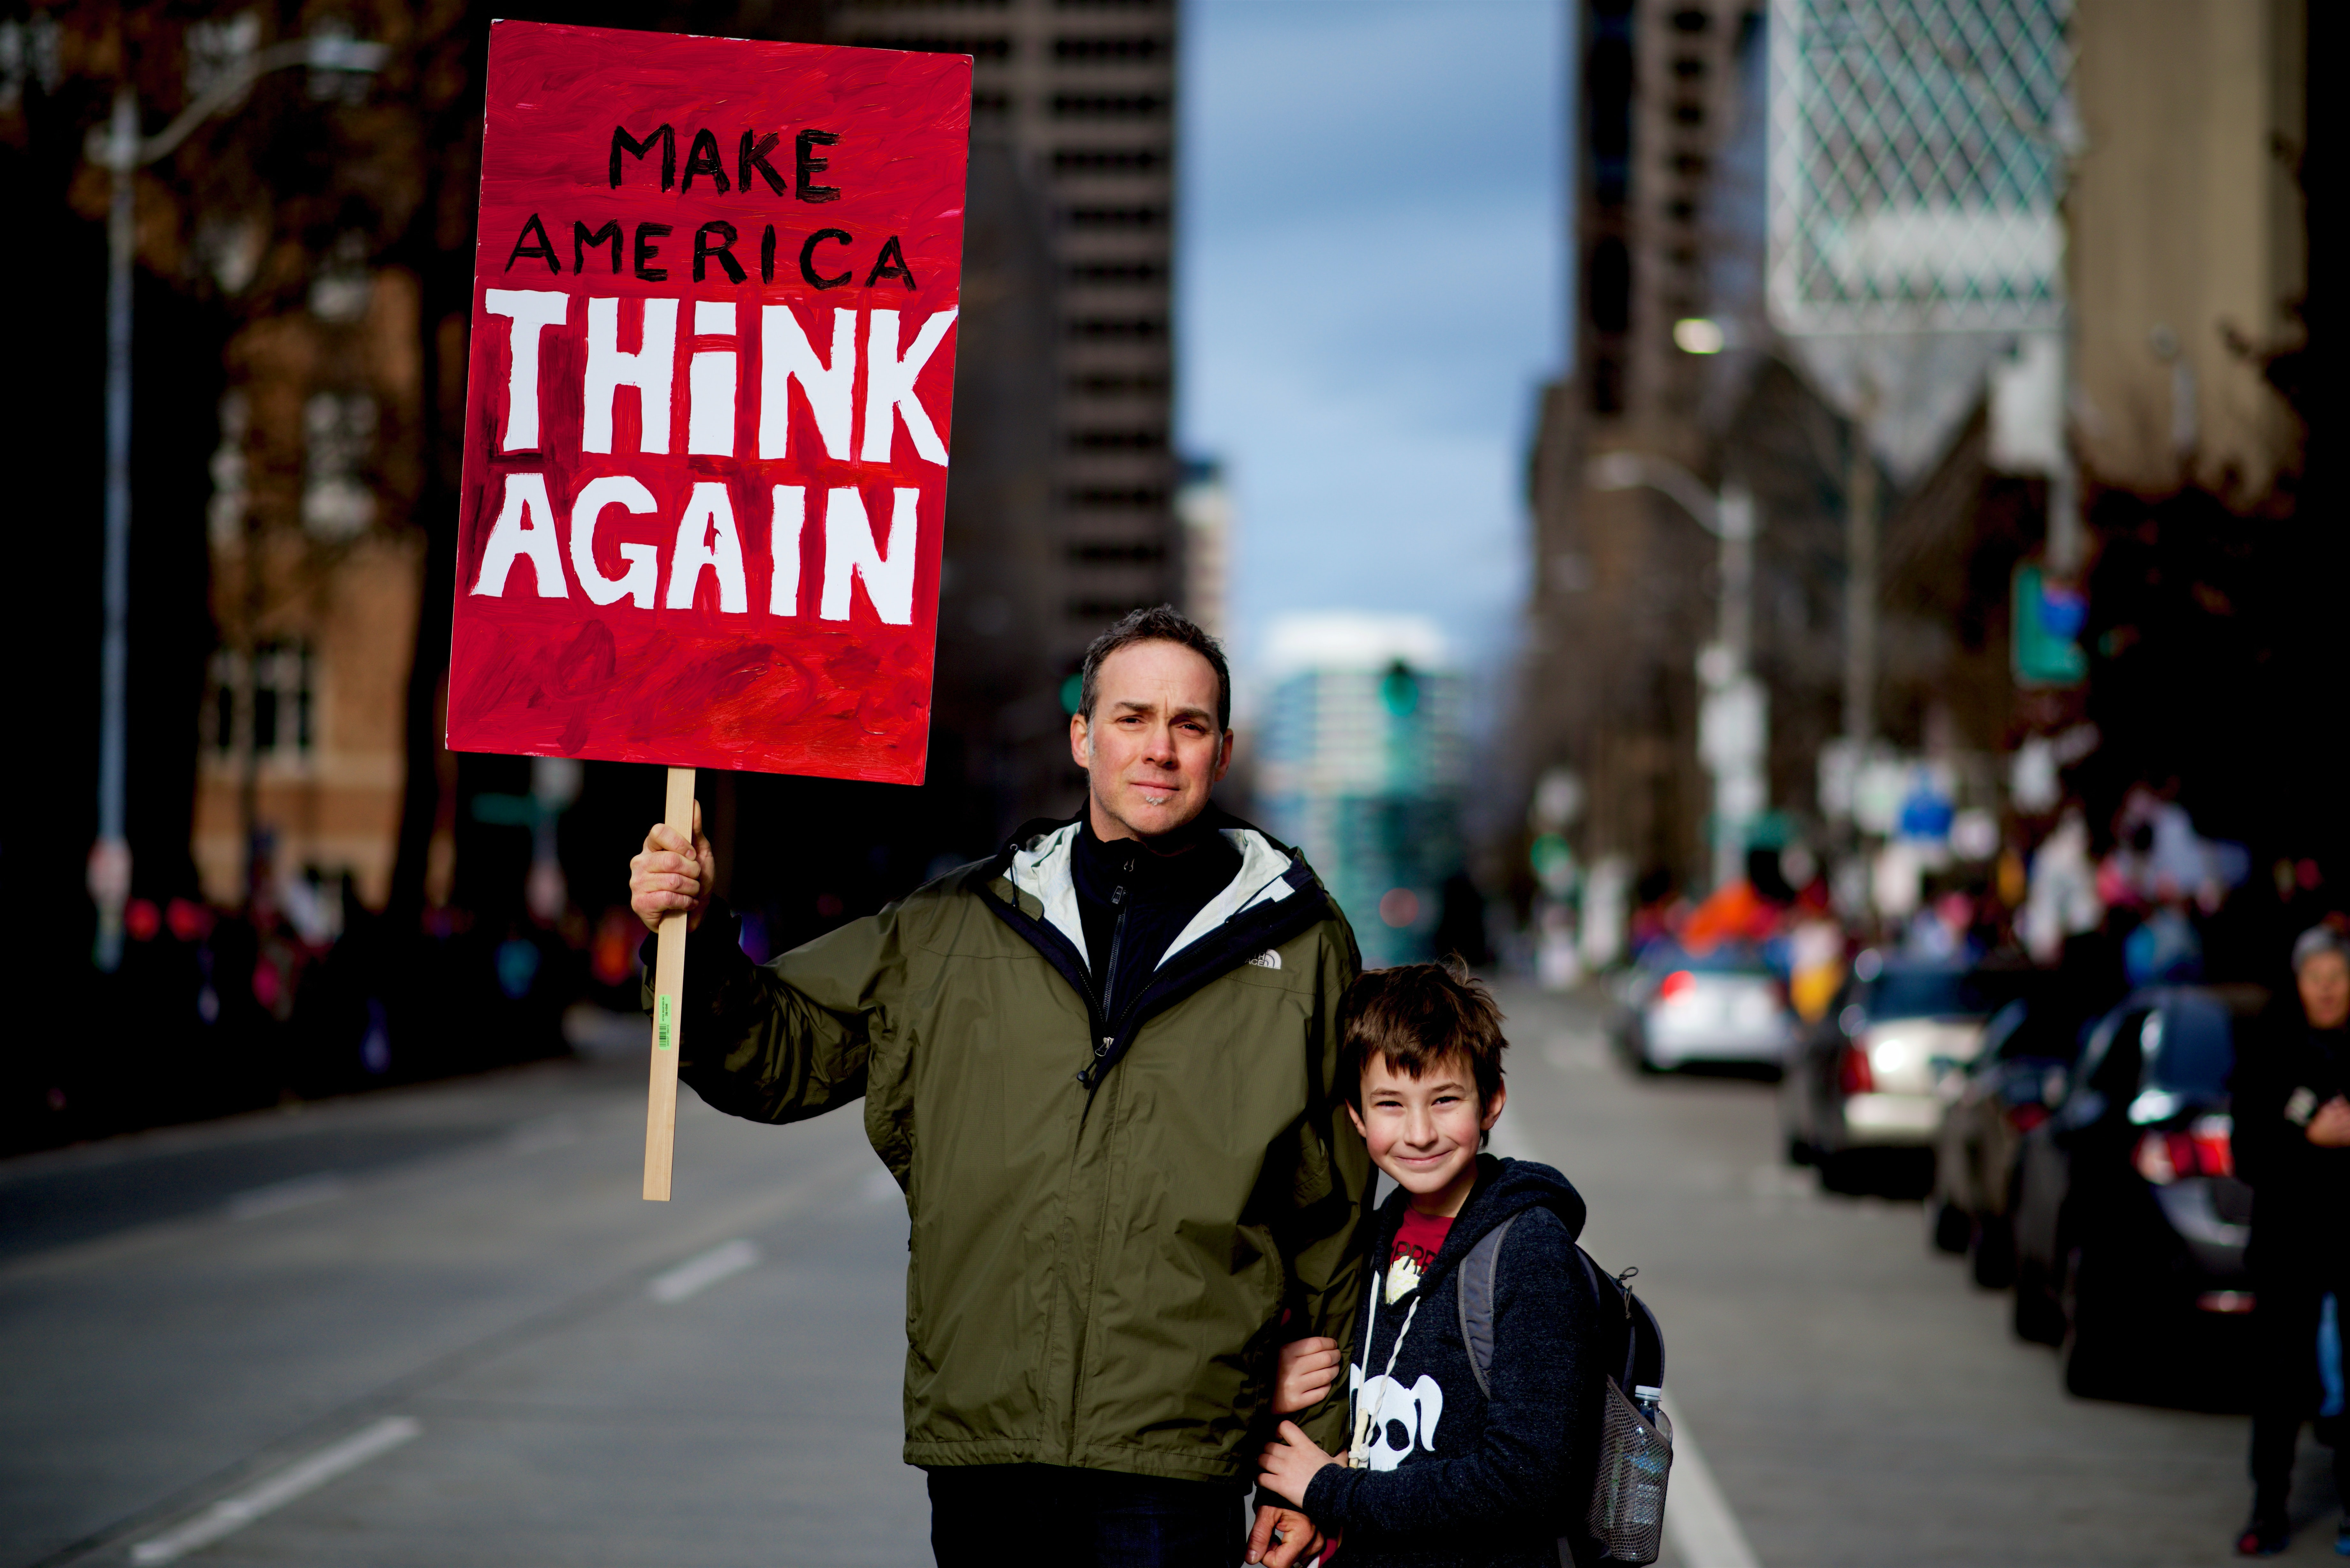 man beside boy holding red and white rally signage